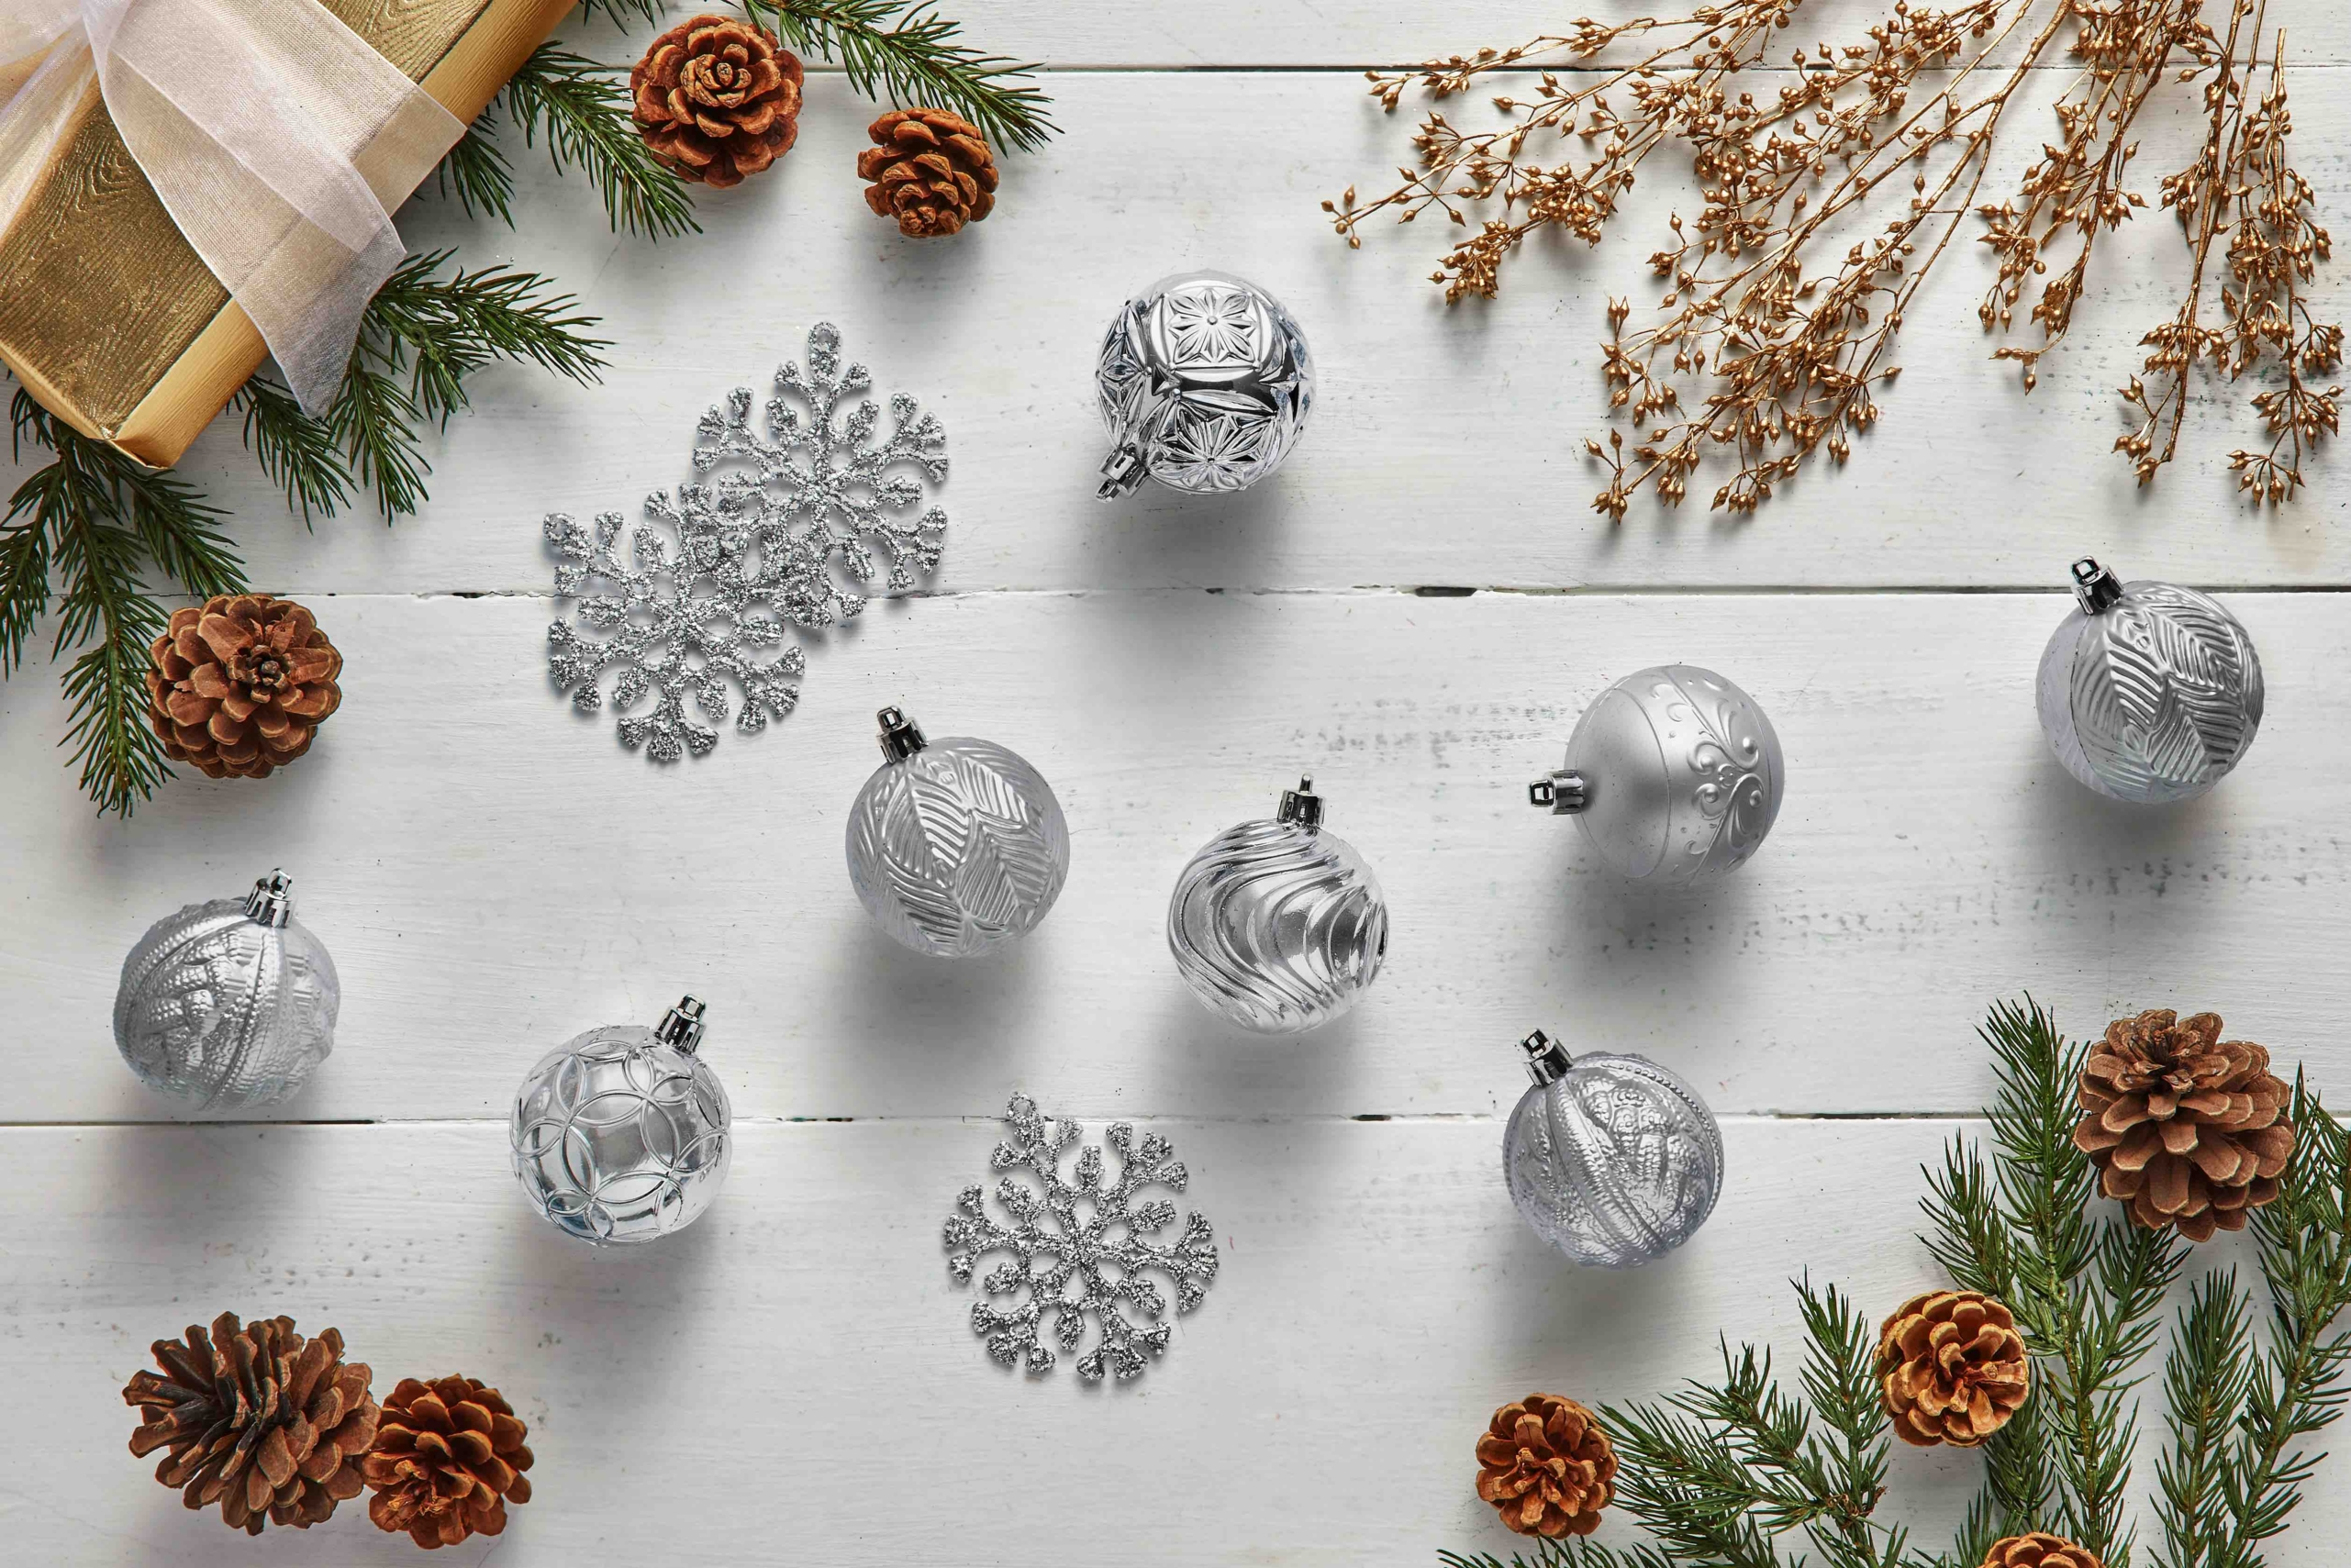 Home Depot's Holiday Décor Makes You Wish It Was Christmas All Year